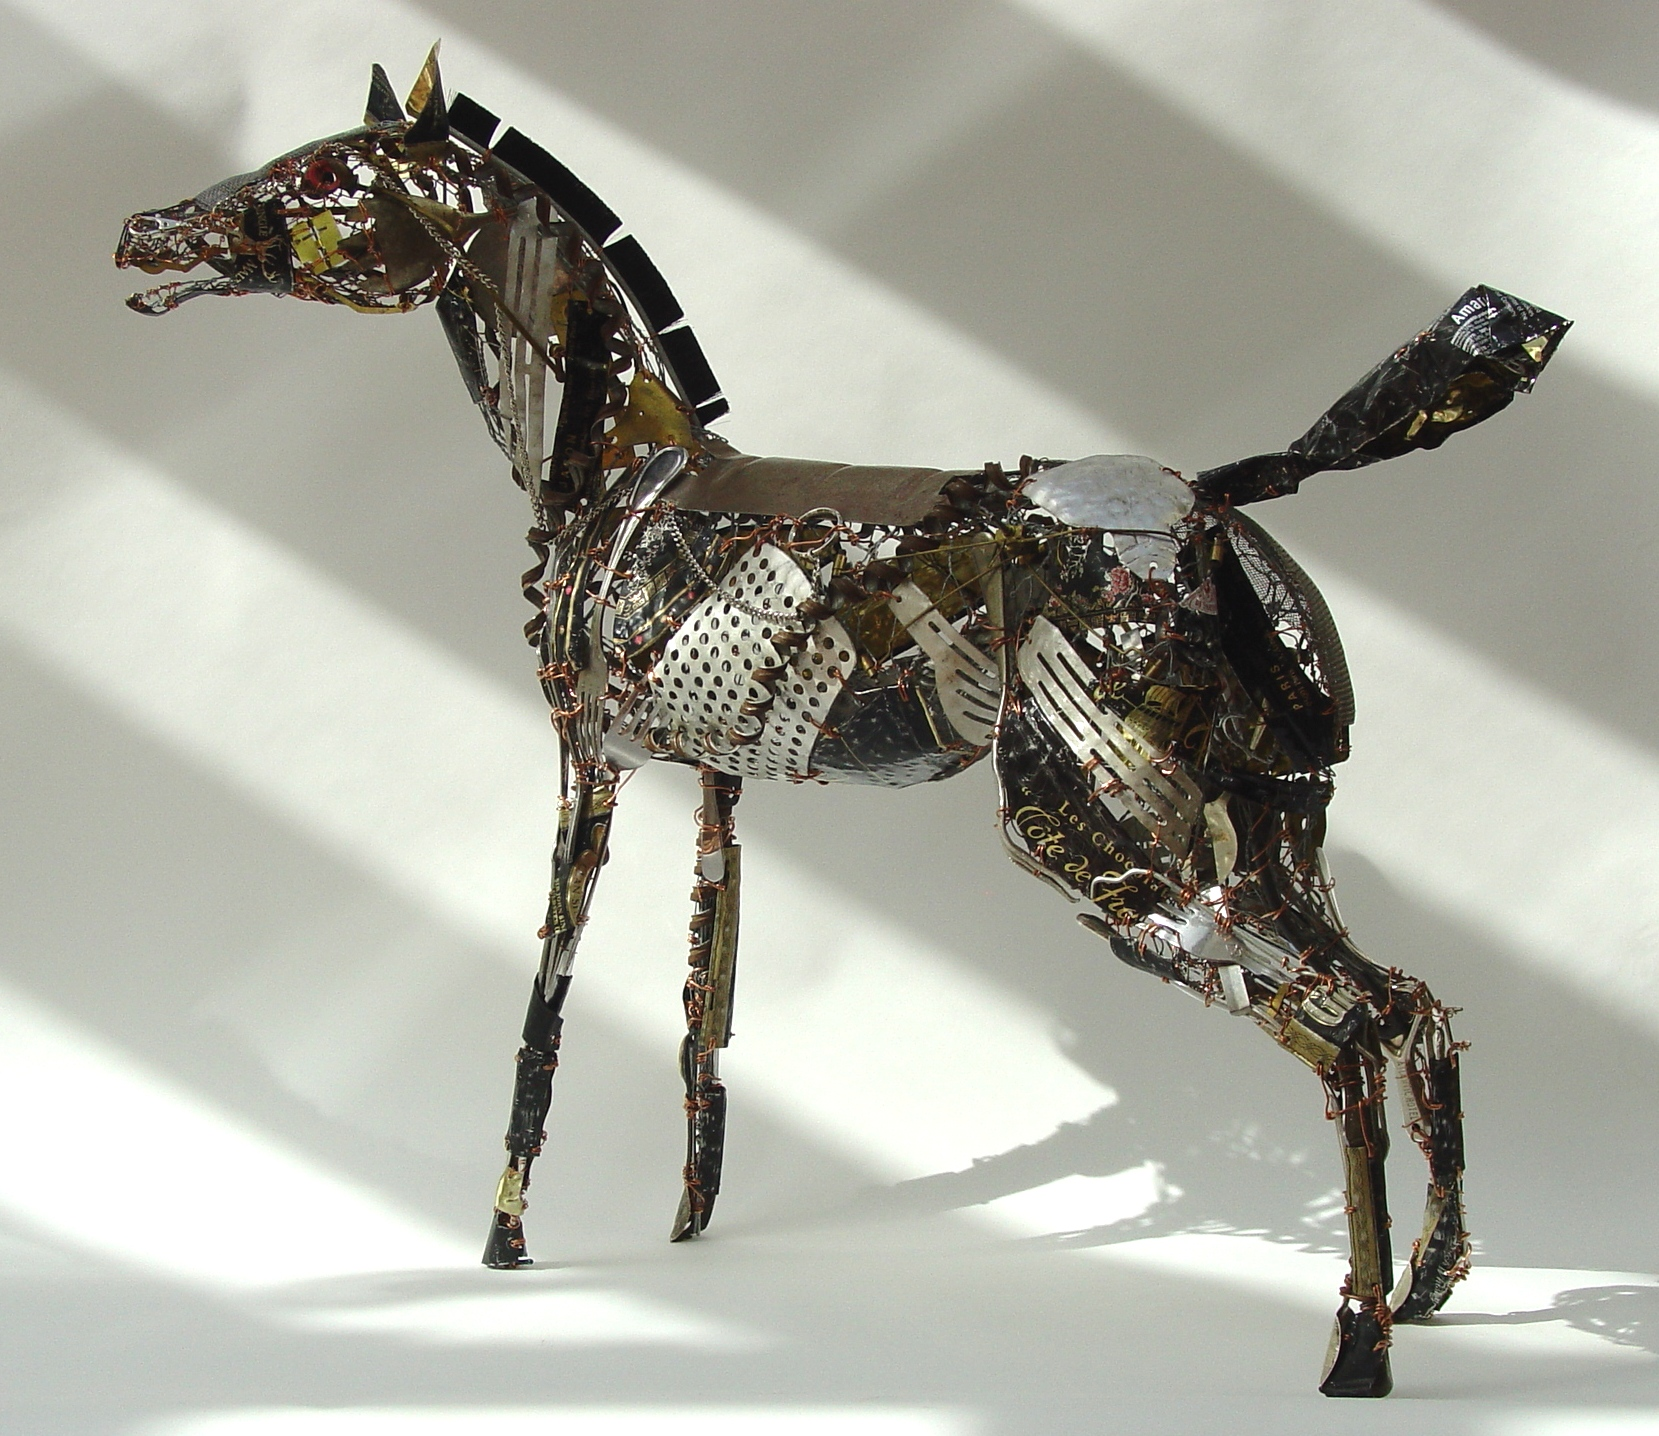 'Horse of Sparta' is 63cm high x 74cm long x 20cm high it is off to the Jack Tierney Gallery in Aberdeen.